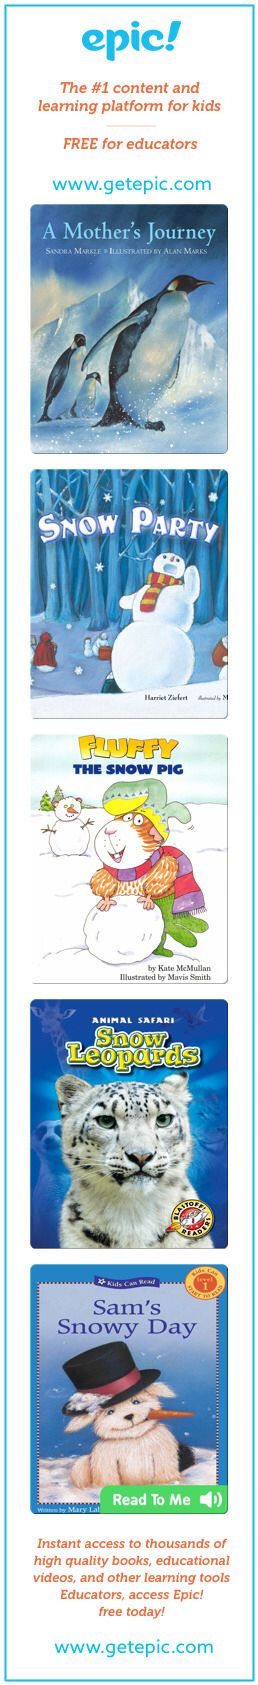 EpicPals January (primary Version) - Titles in this collection: A Mother's Journey, Snow Party, Fluffy and the Snow Pig, Snow Leopards, Sam's Snowy Day